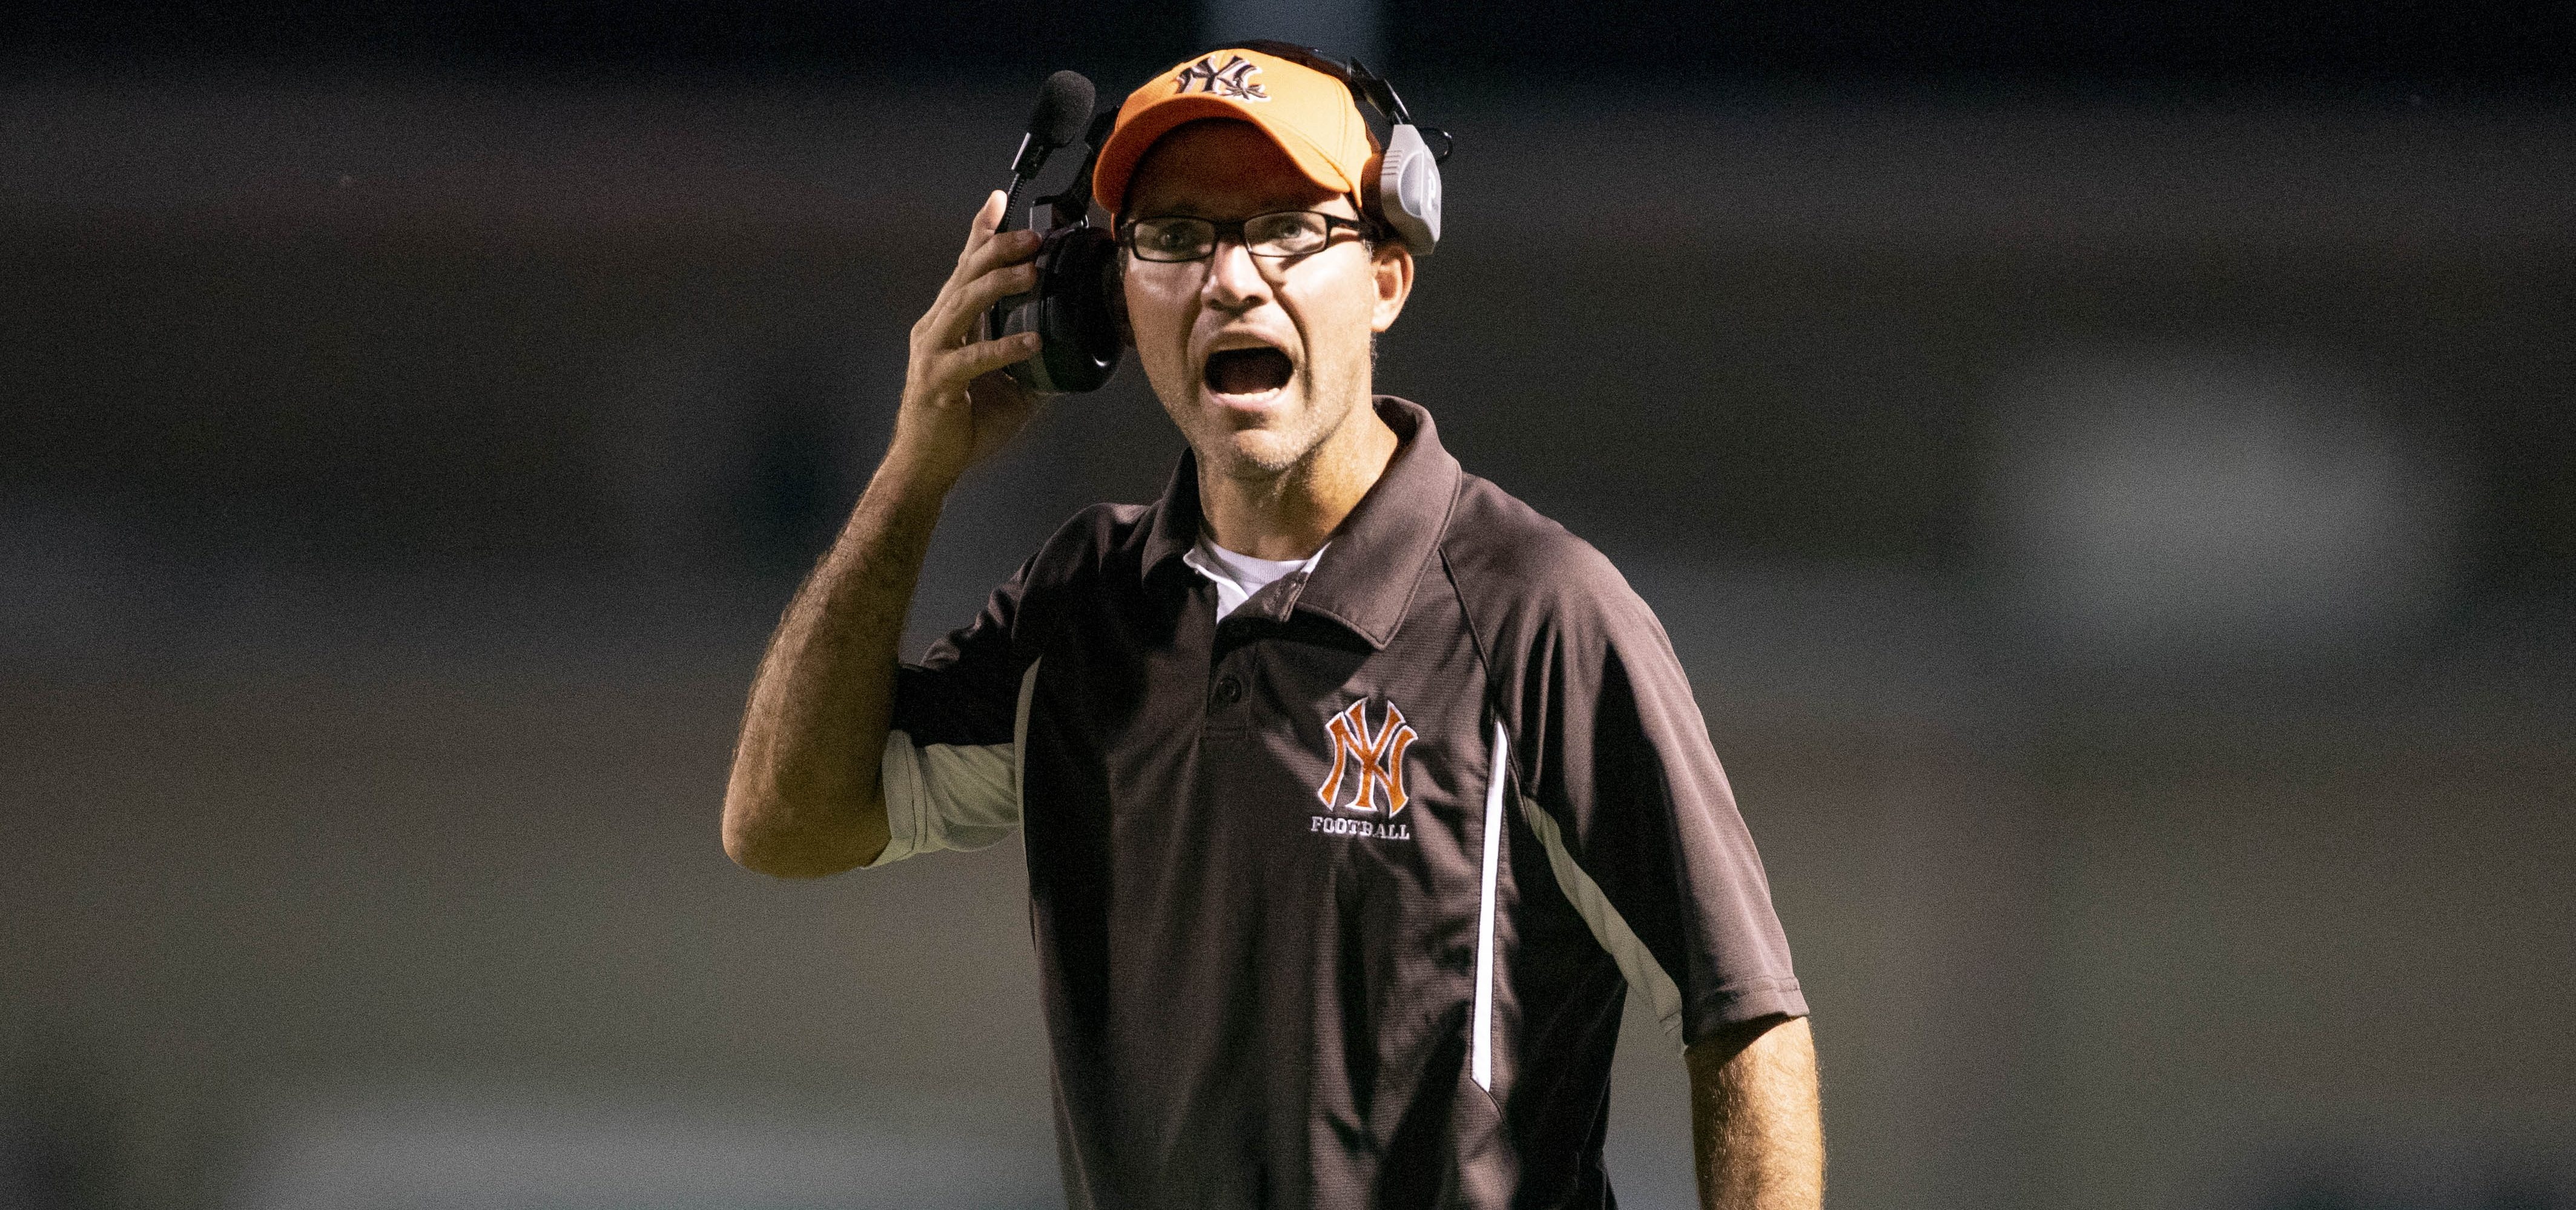 Nelsonville-York head coach Rusty Richards yells to his players during the game against River Valley on Sept. 20, 2019.